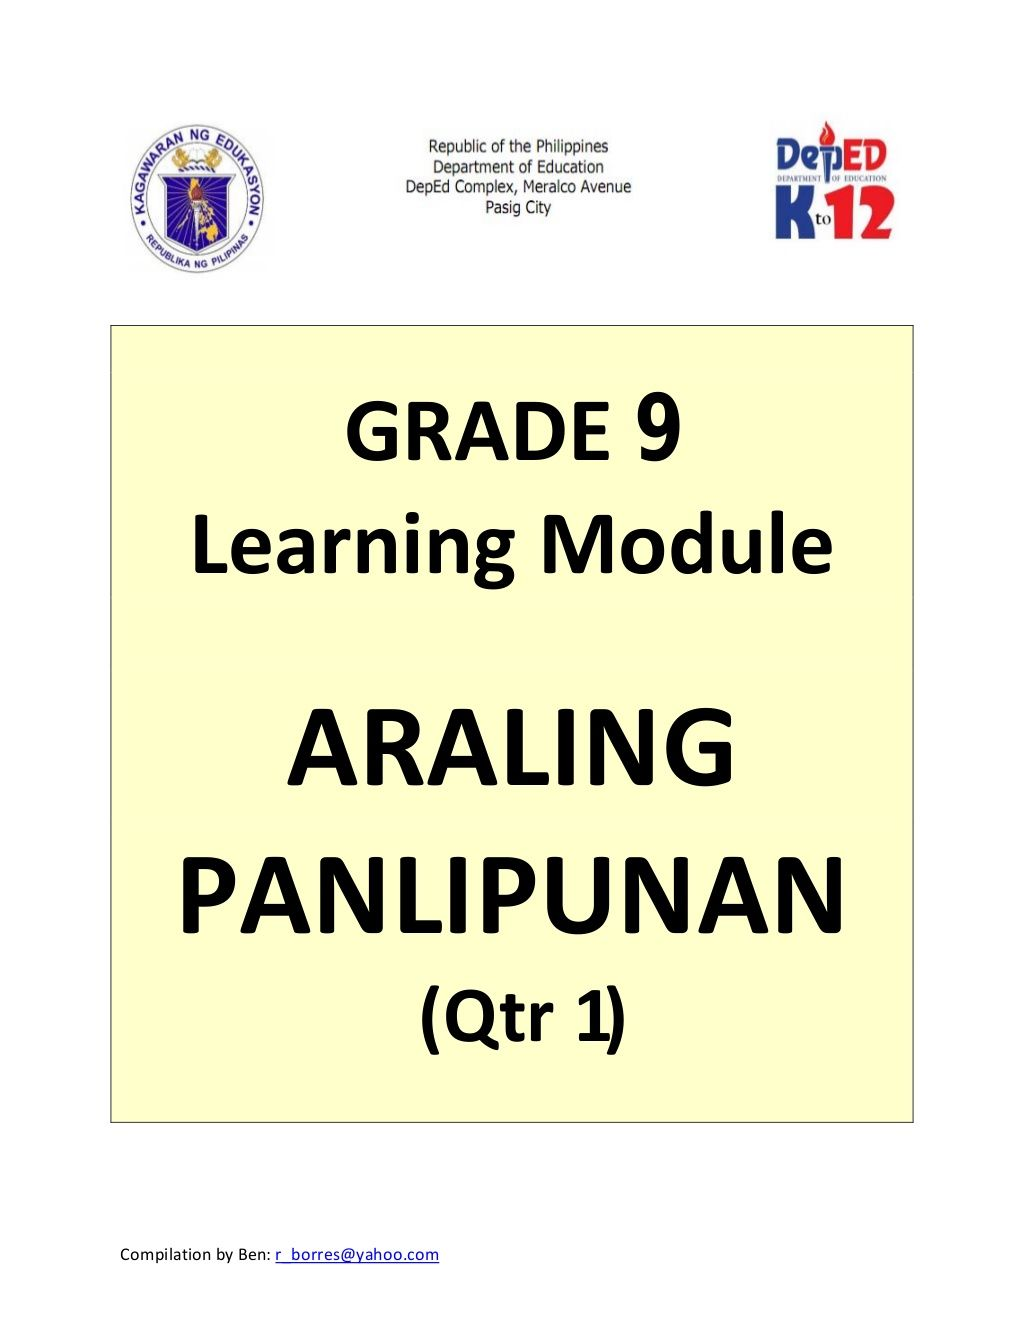 small resolution of Grade 9 Learning Module in Araling Panlipunan - Quarter 1 only   High  school lesson plans